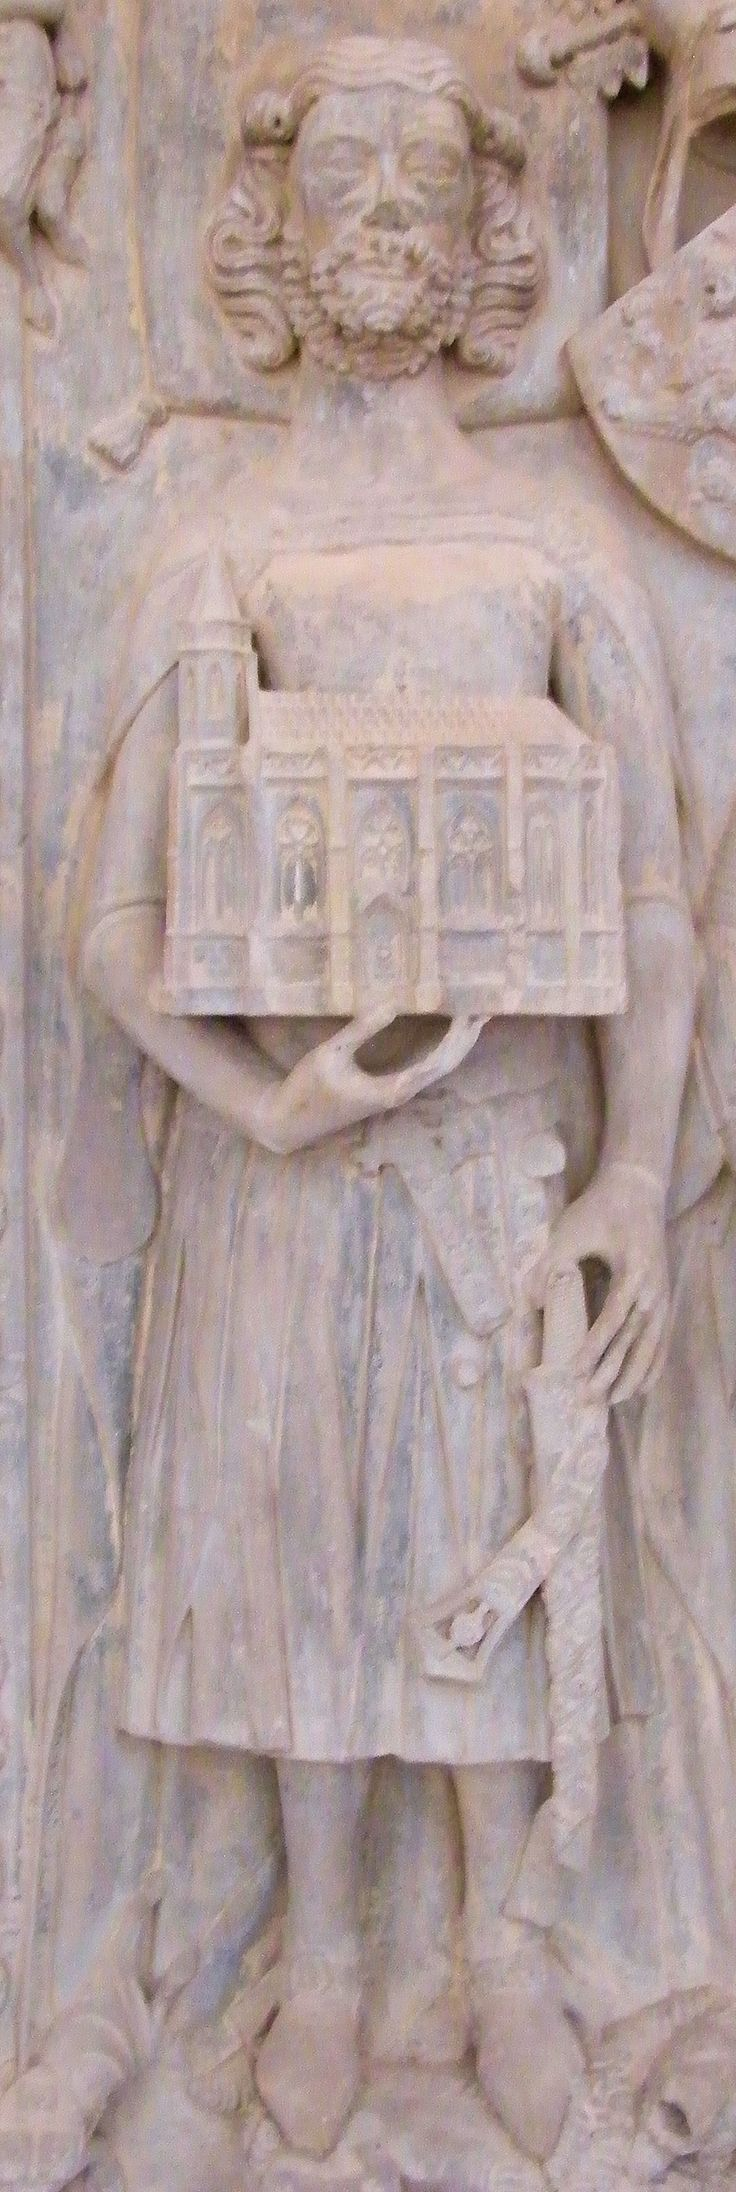 Germany Nienburg - St Marien and St Cyprian Margrave Thietmar died 978 and son Gero effigy 1350 91.JPG (1082×3223)